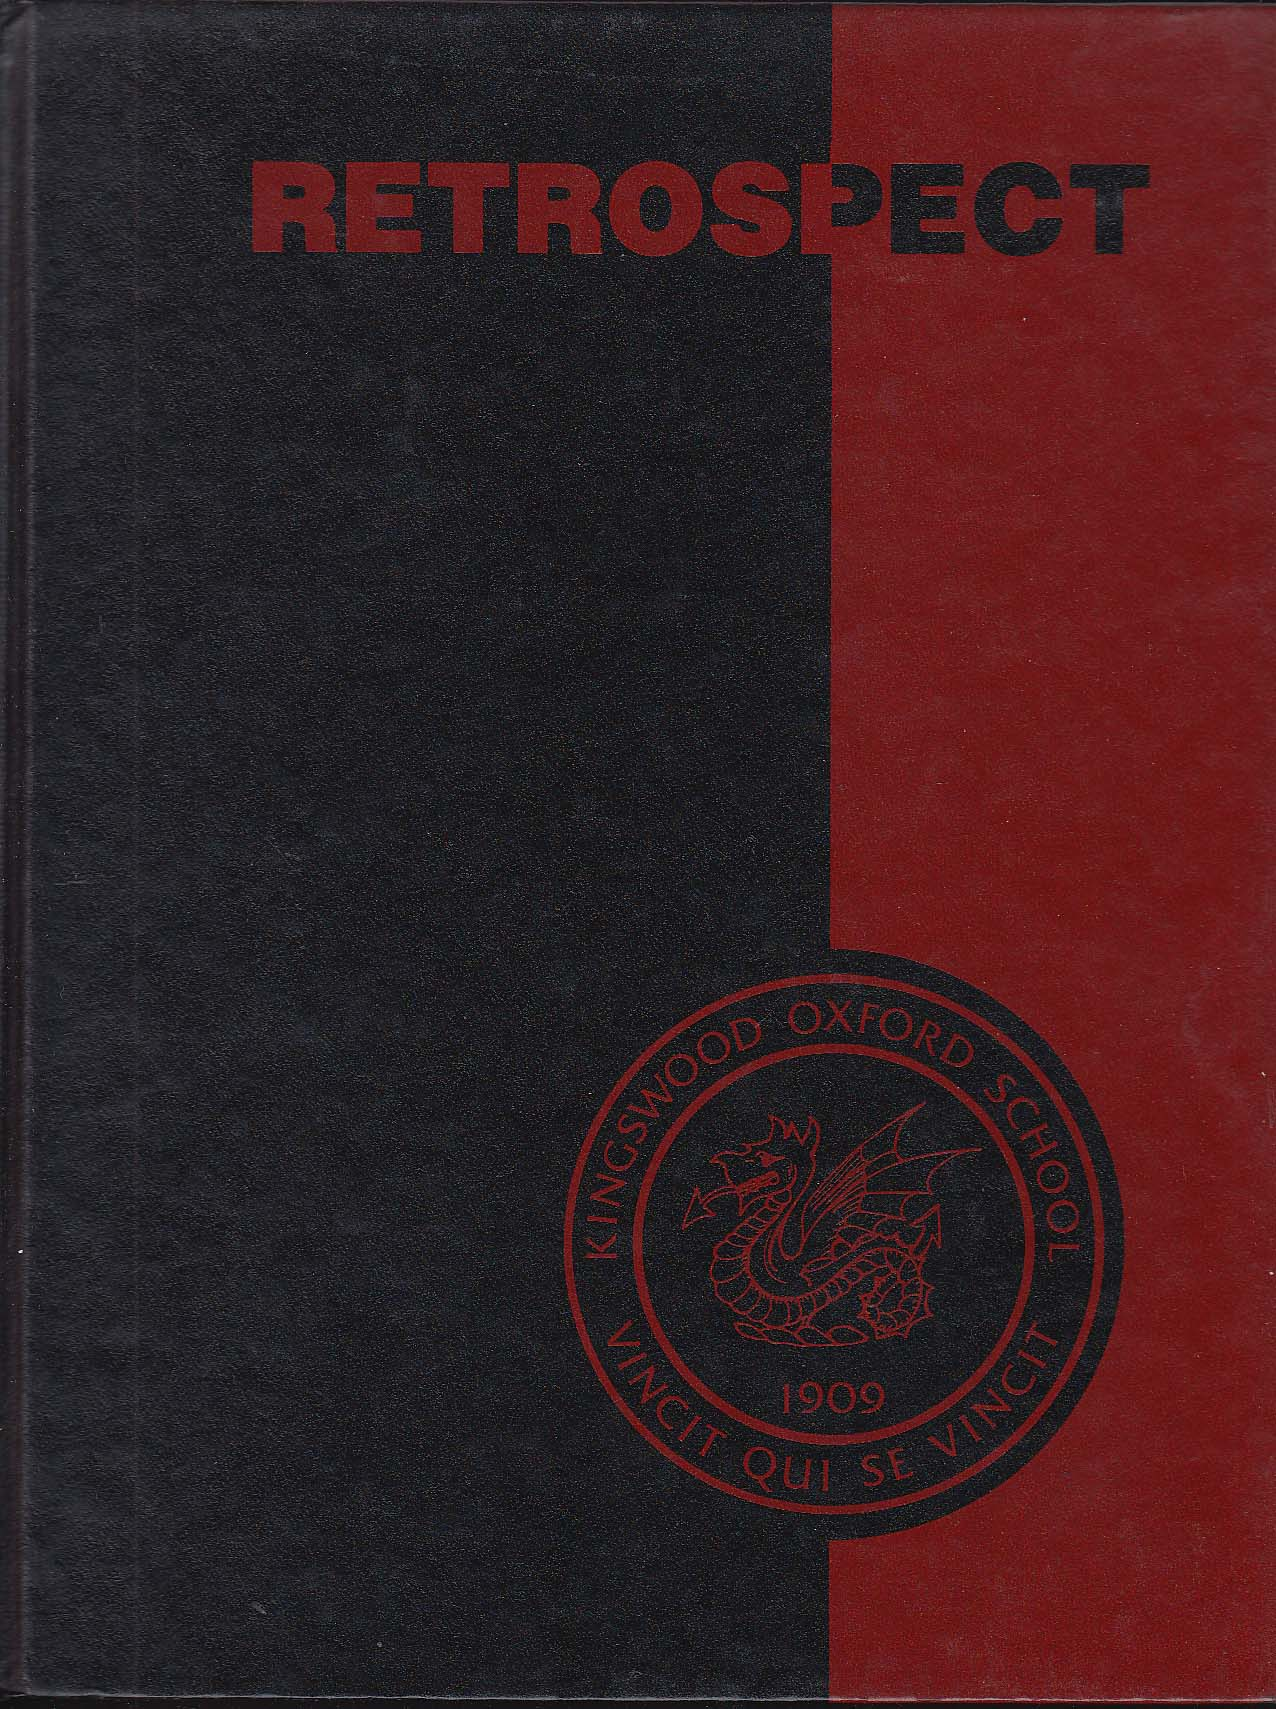 Image for Kingswood Oxford School Retrospect 1989 Yearbook Nancy Lublin West Hartford CT